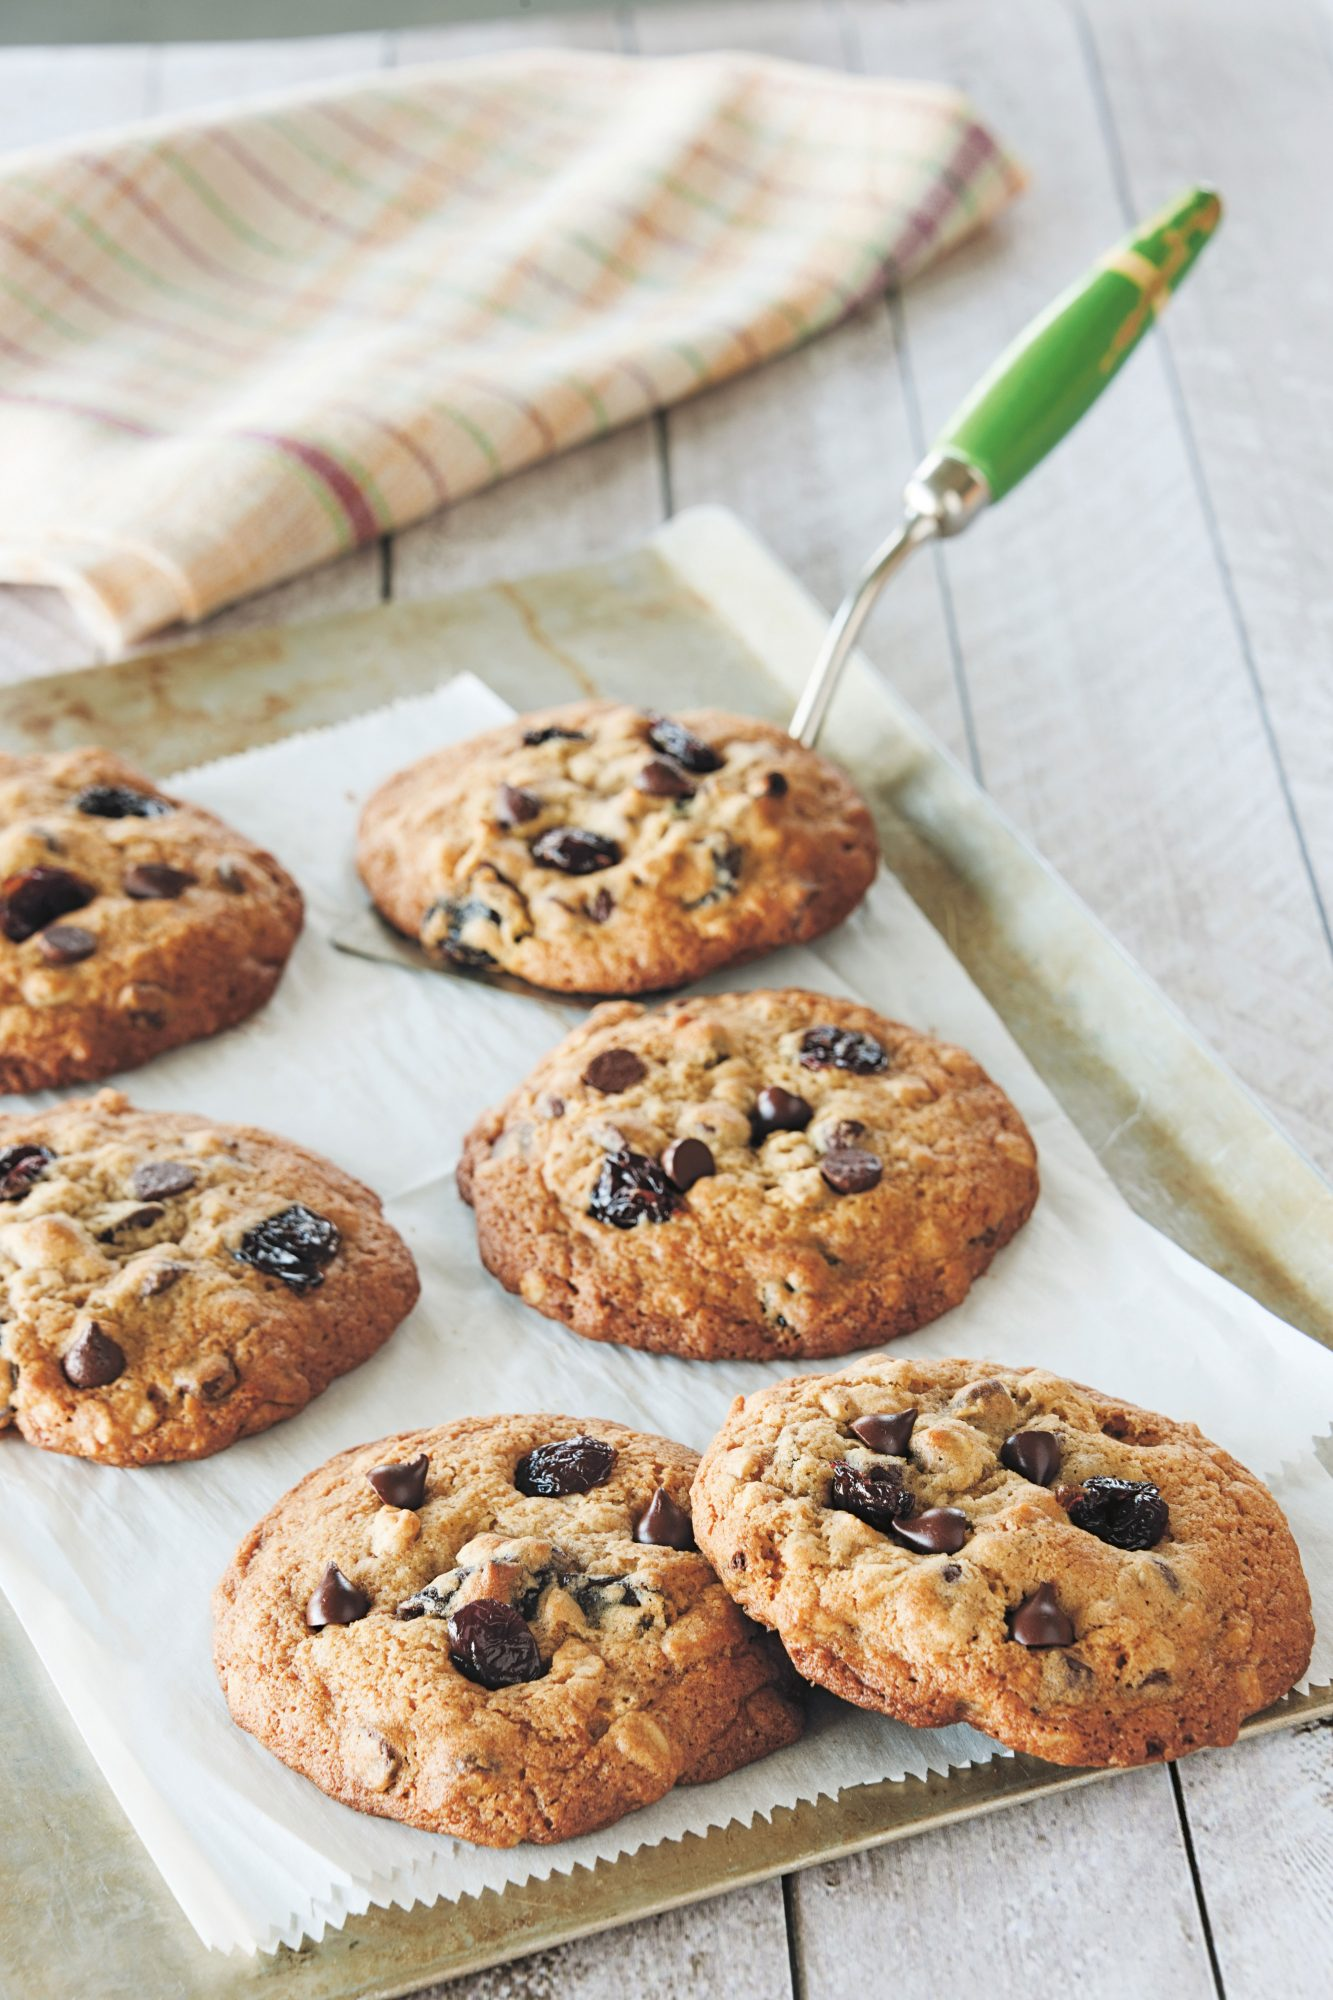 Damaris Phillips' Chocolate Chip Cherry Cookies Recipe